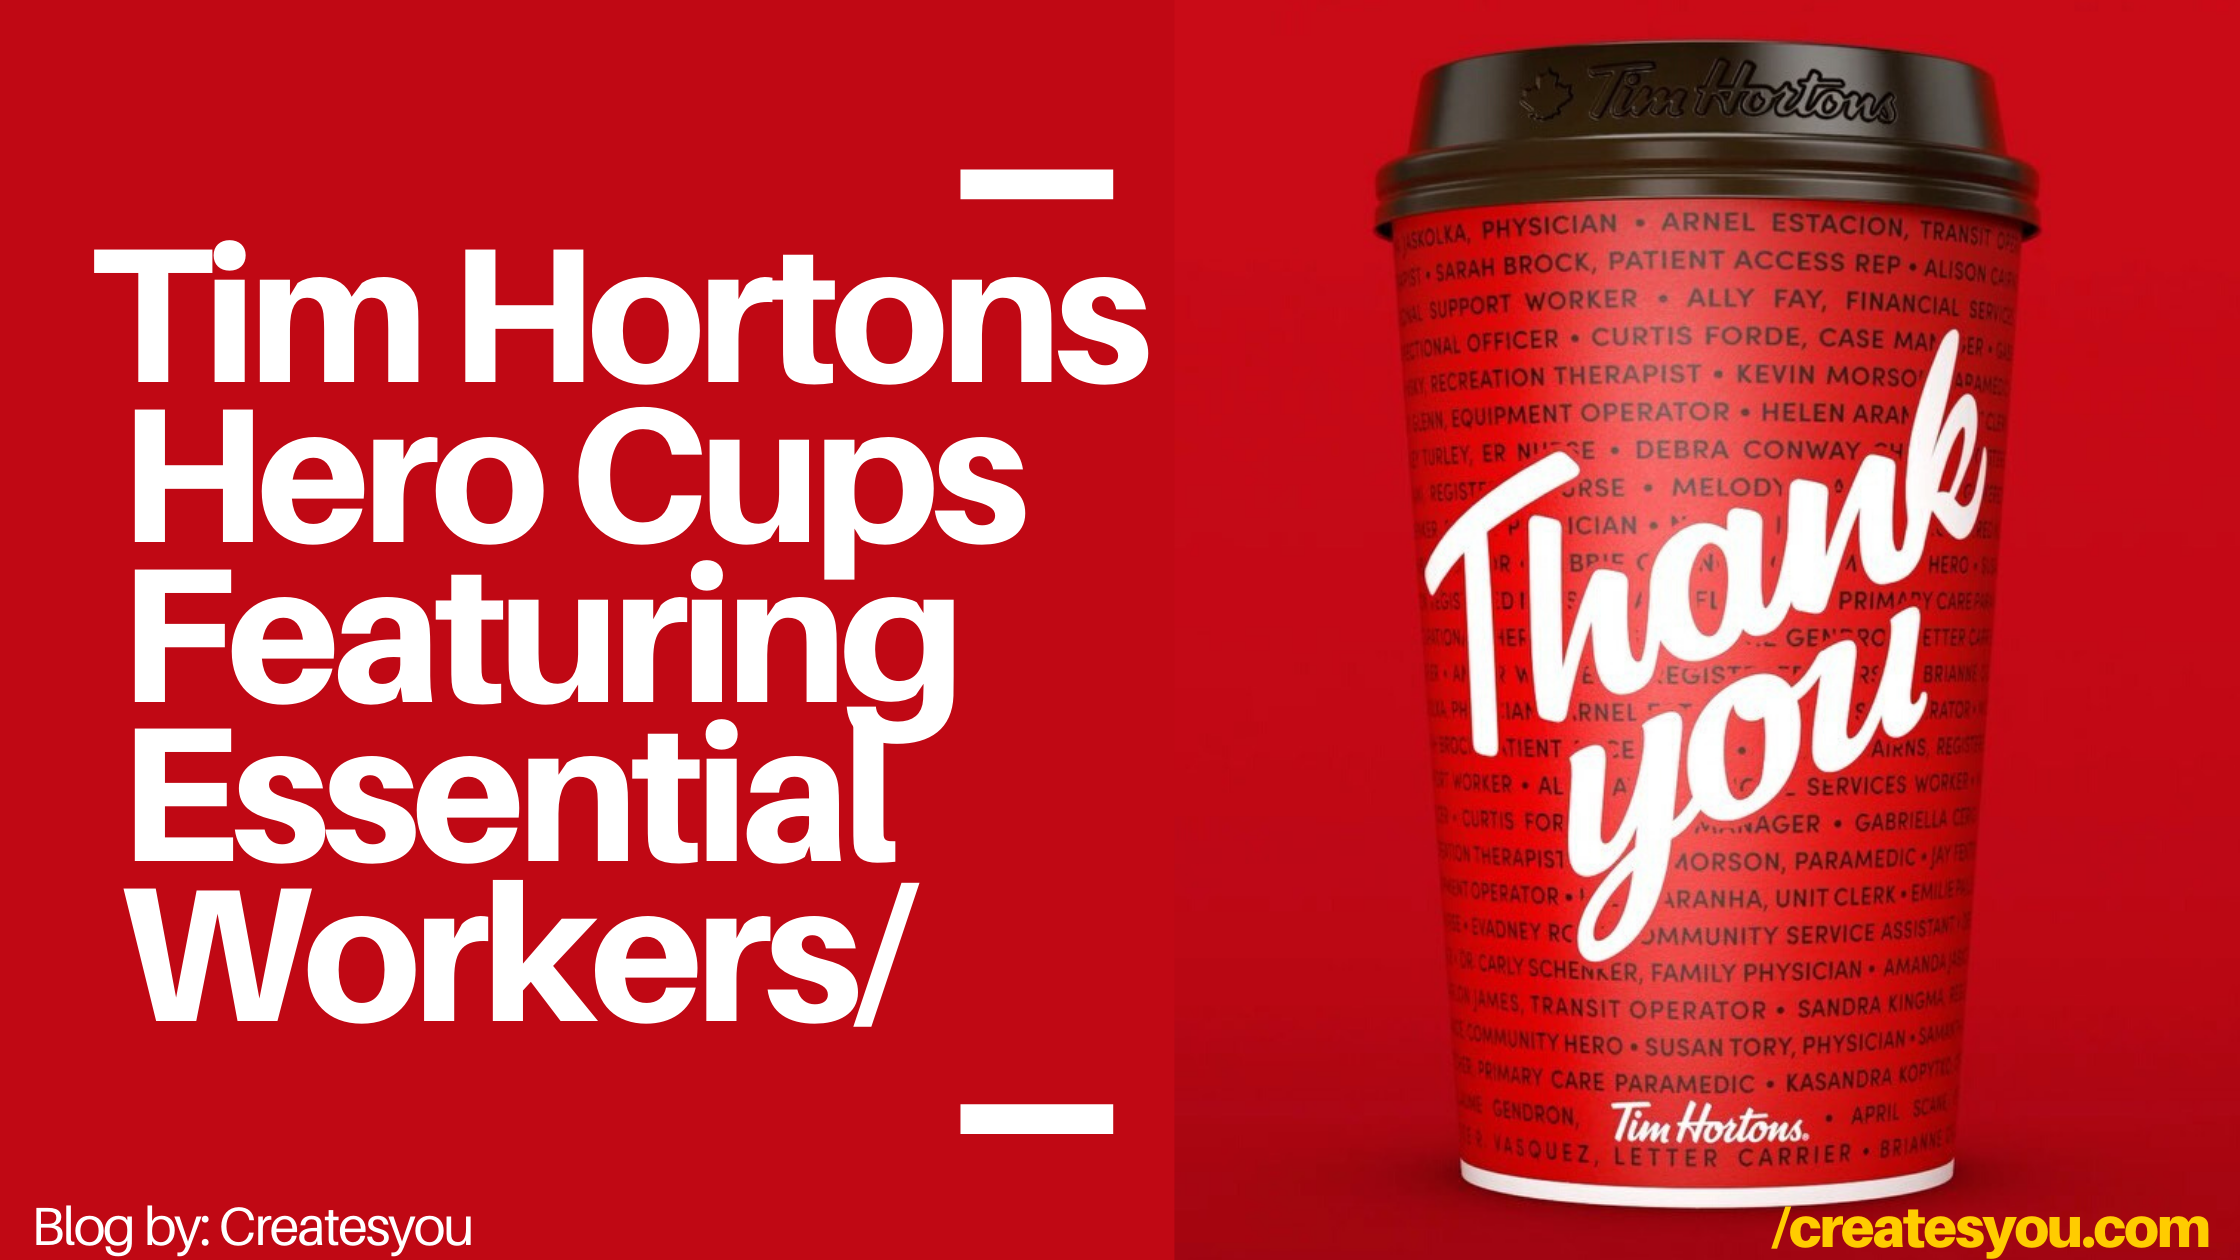 Tim Hortons Hero Cups Featuring Essential Workers by Createsyou